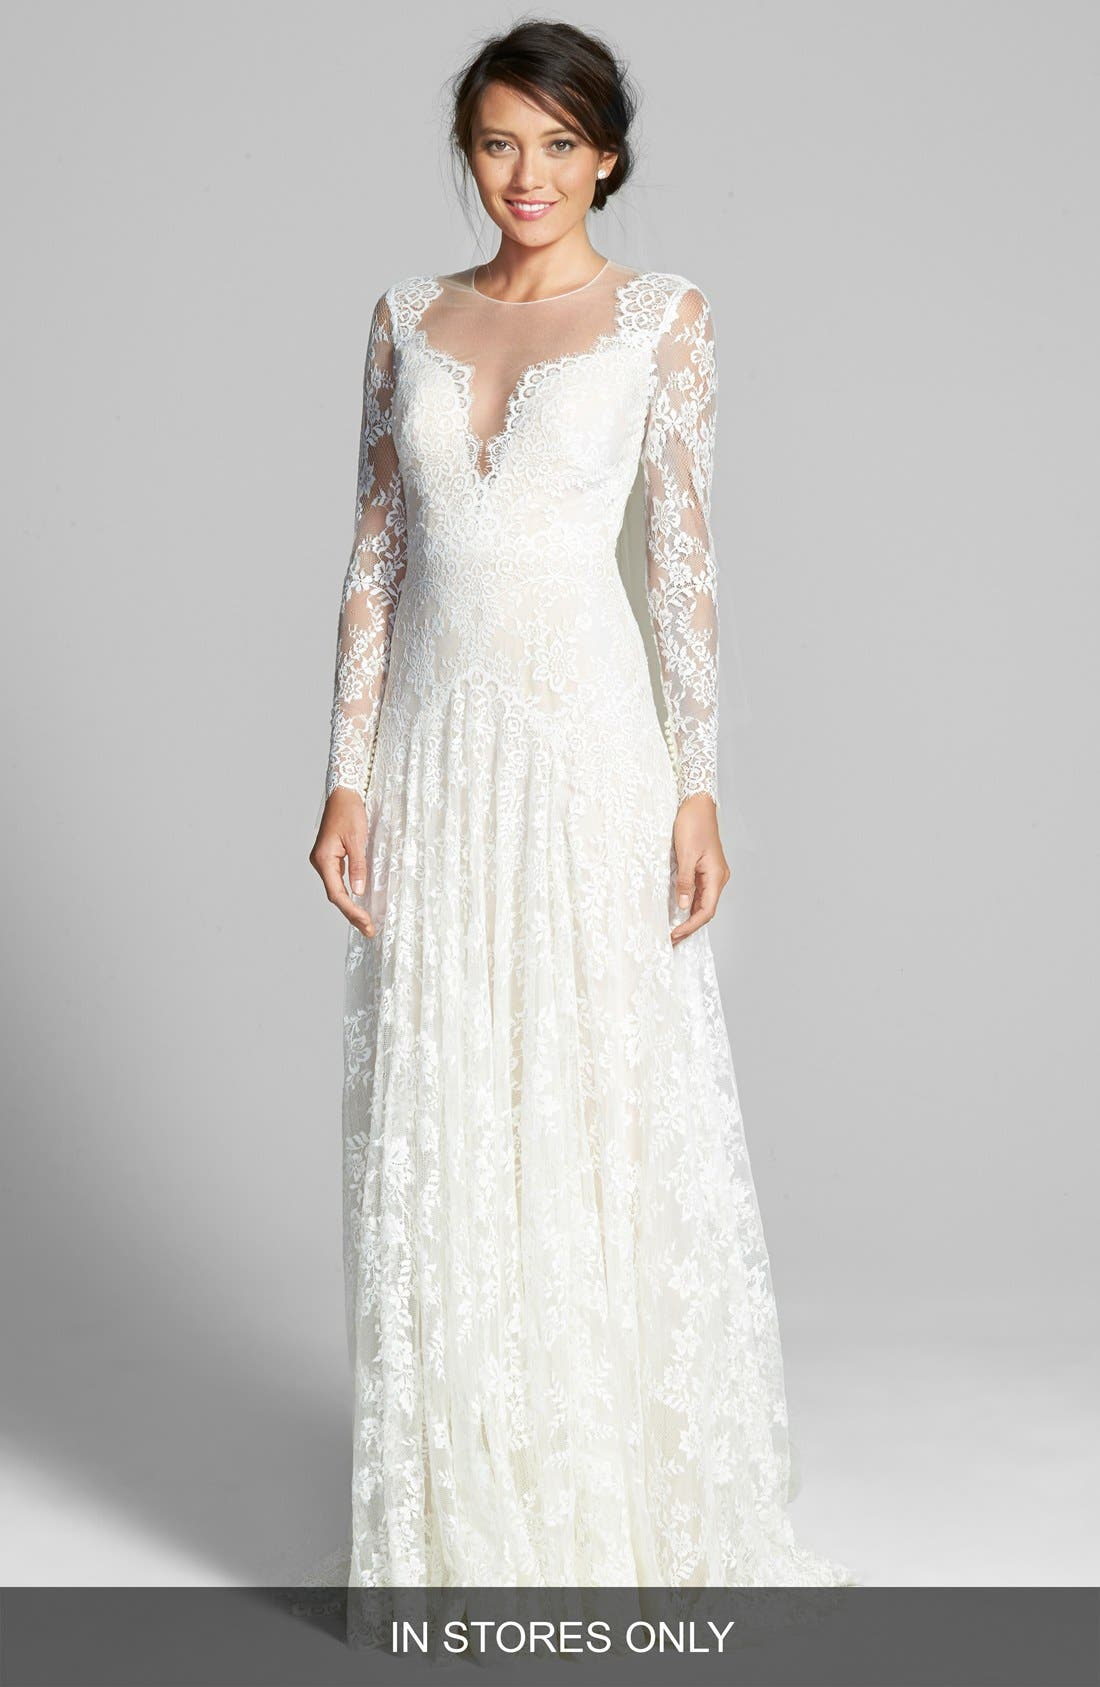 Main Image - Watters Arcelia Illusion Yoke A-Line Lace Gown